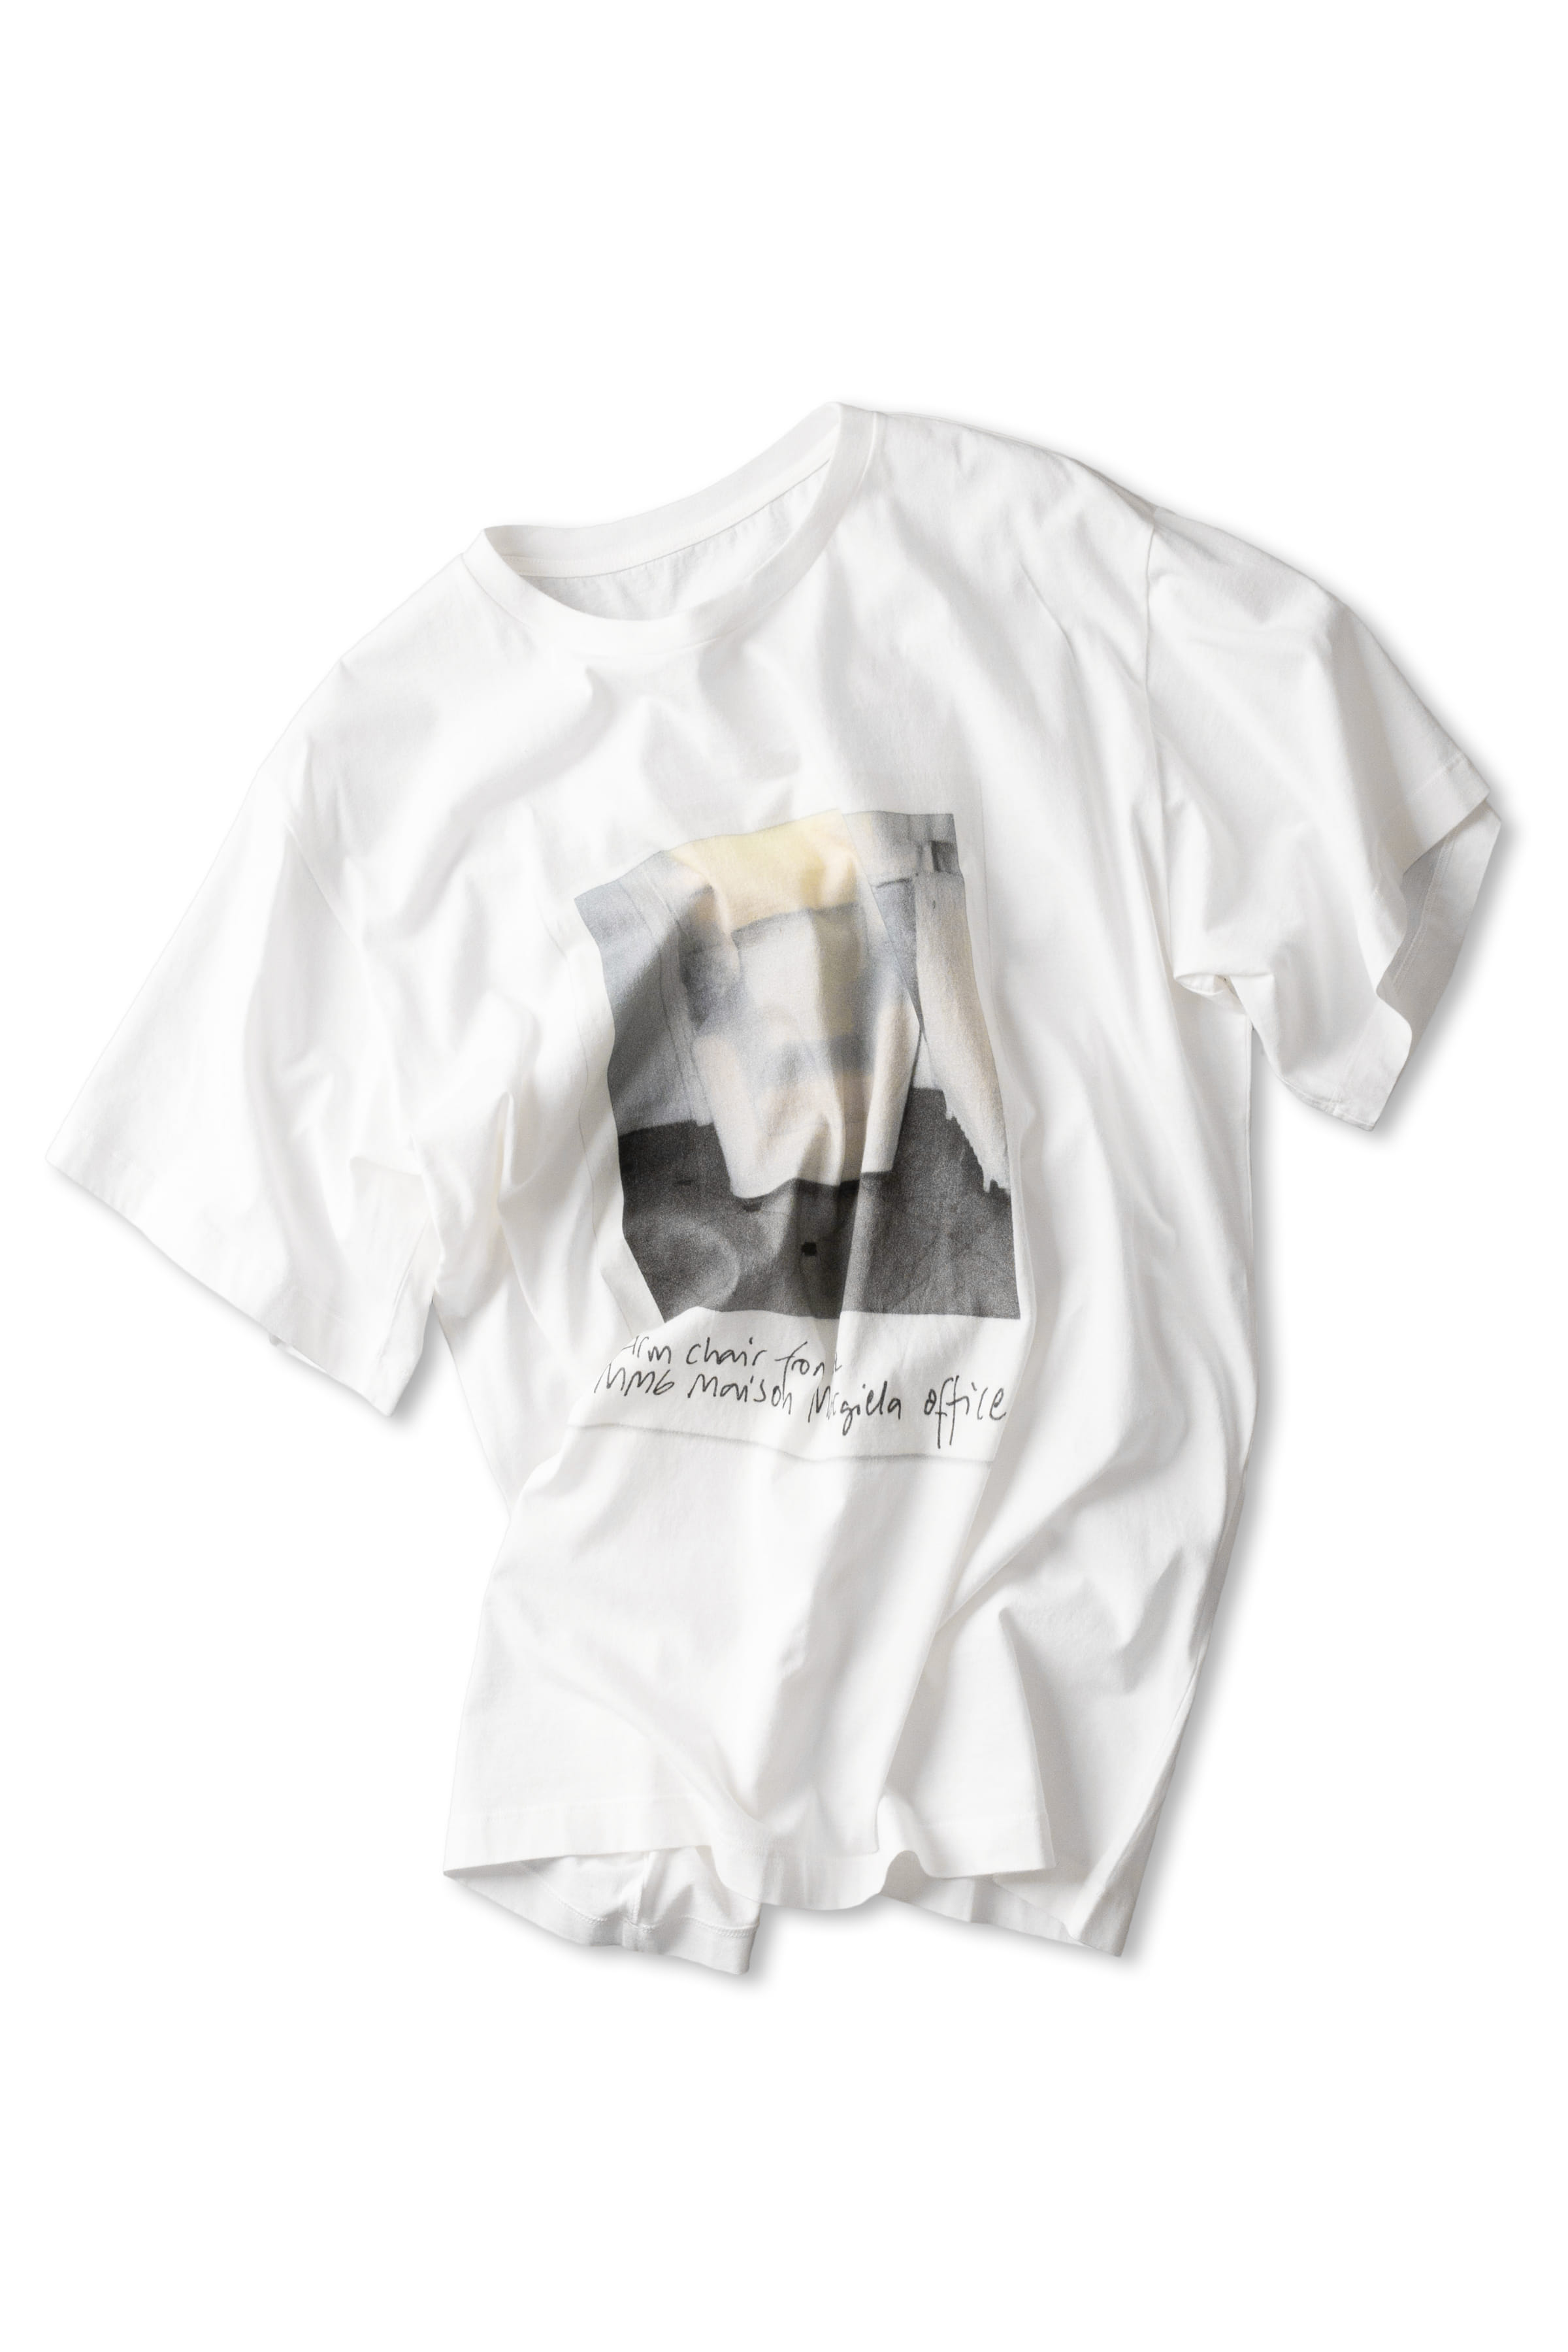 MM6 Maison Margiela : T-Shirt 0508 (White)